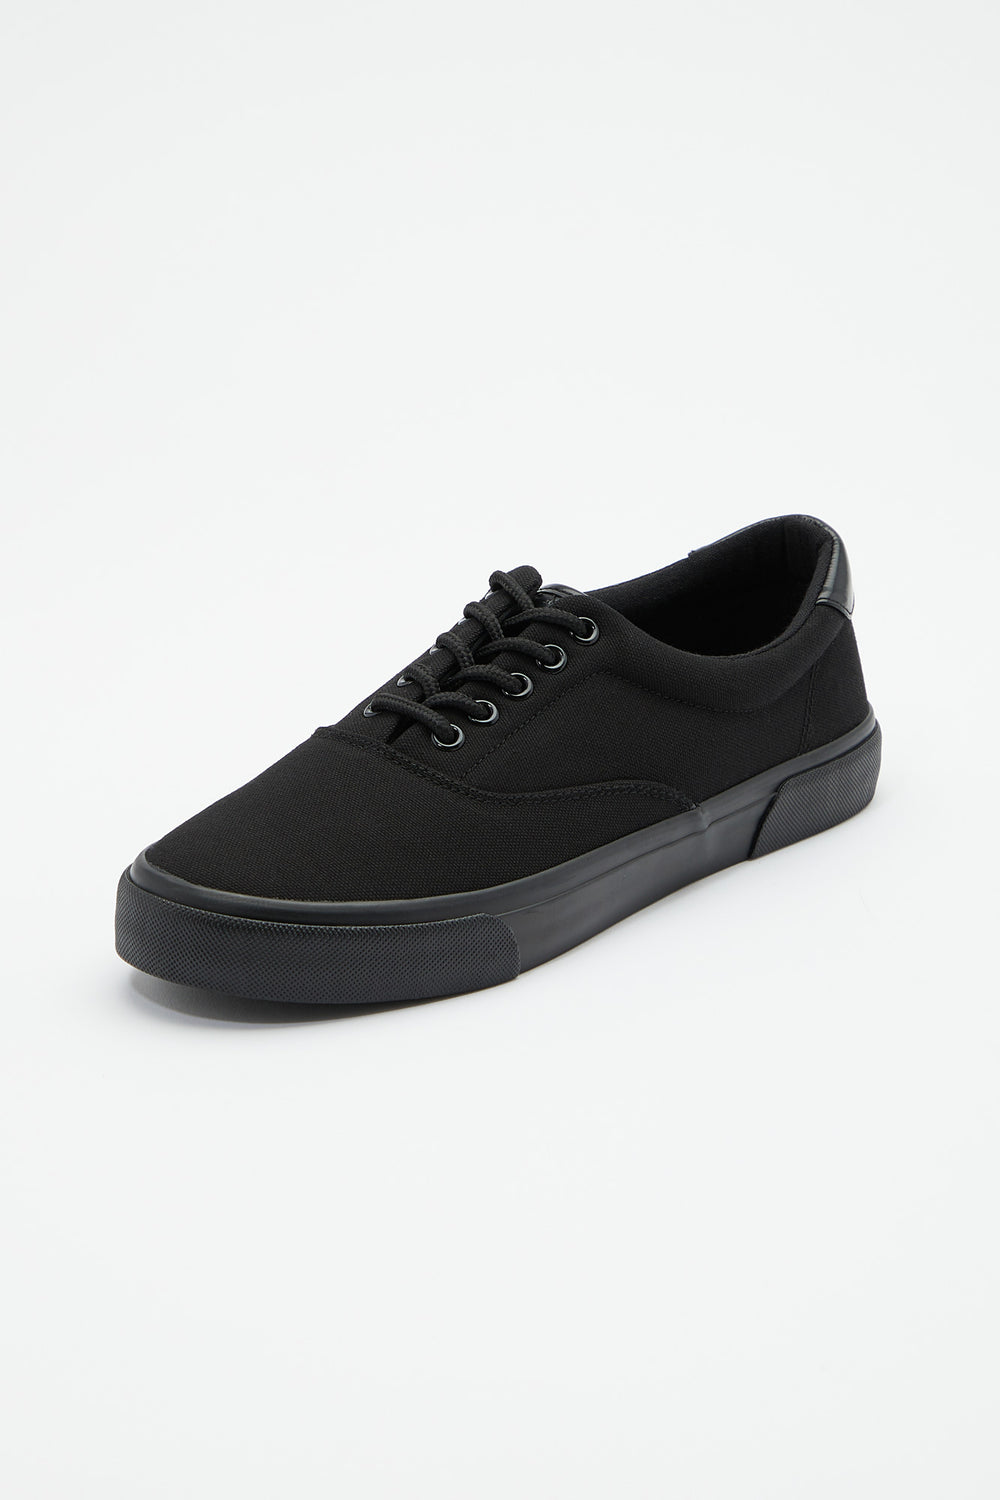 Zoo York Mens Jax Shoes Black